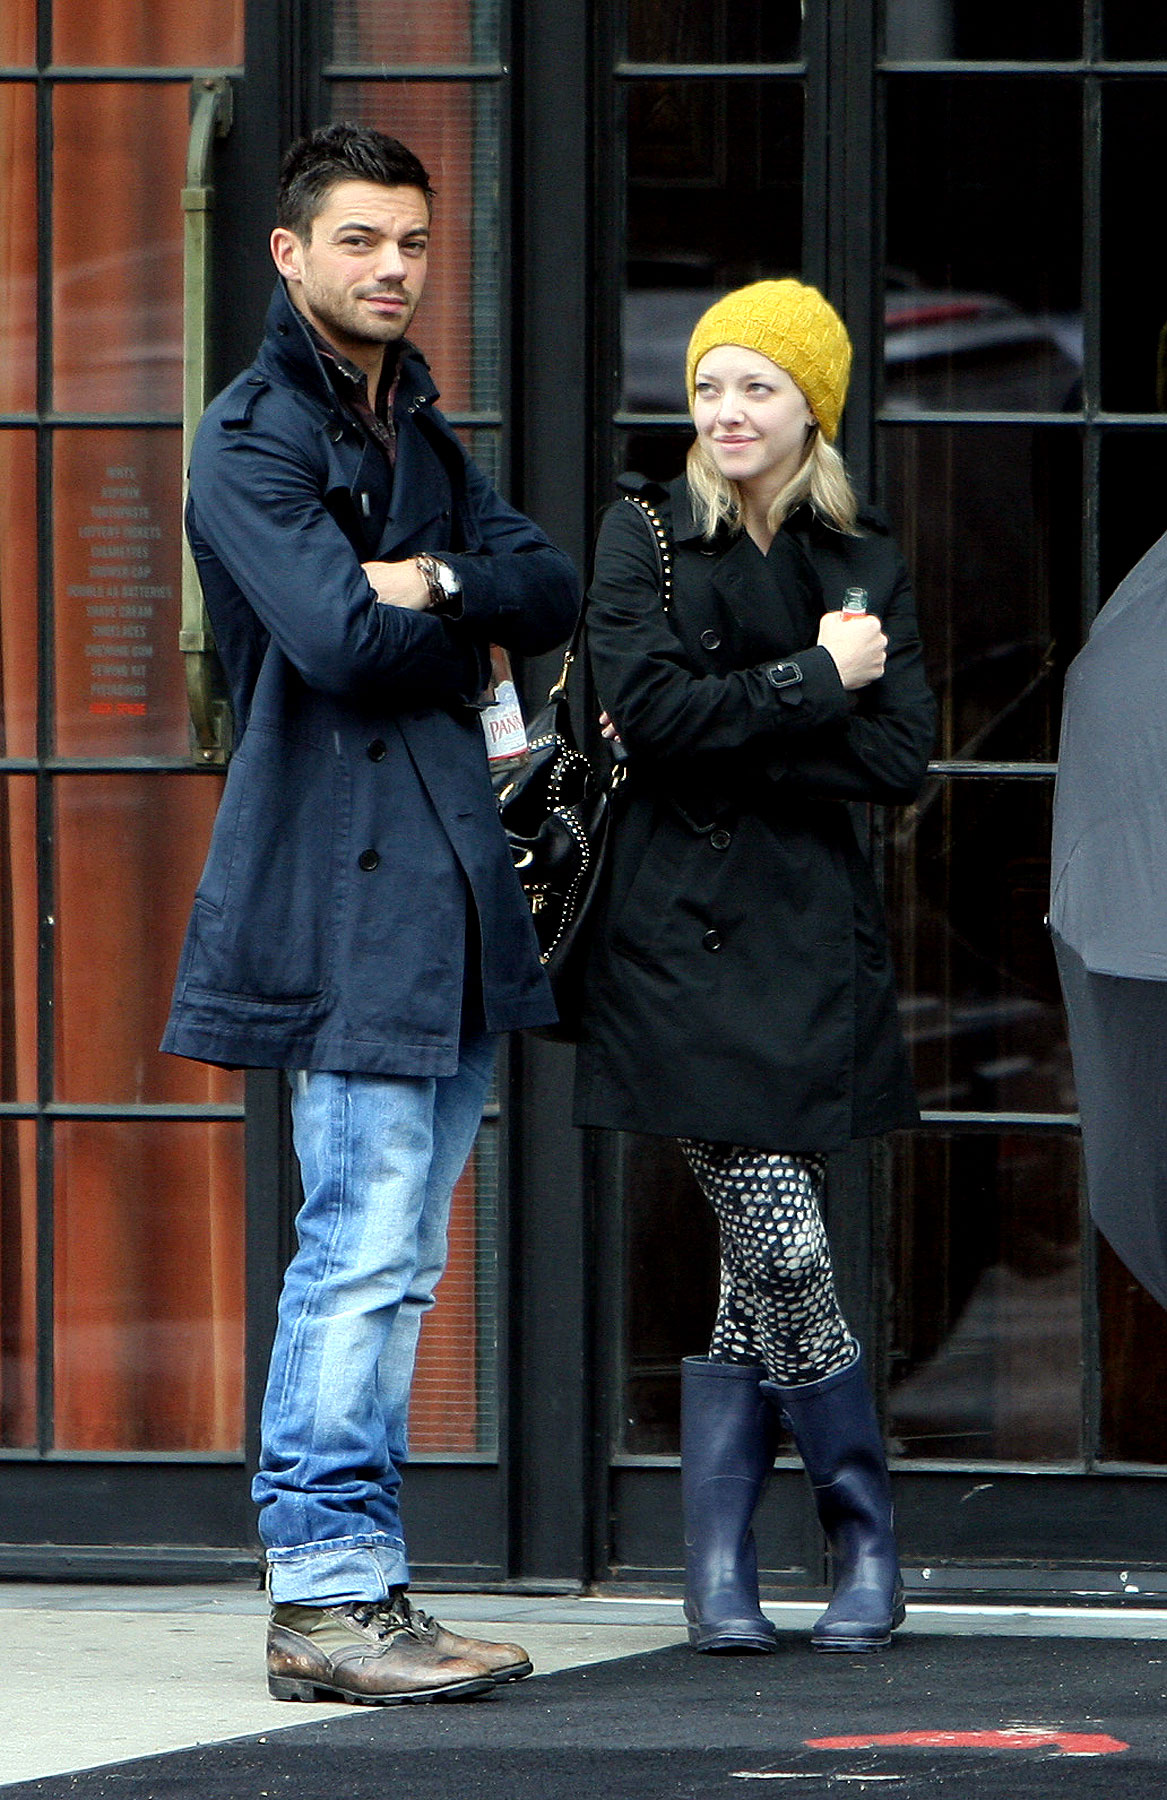 Amanda Seyfried Braves Stormy Weather With Her Man (PHOTOS)